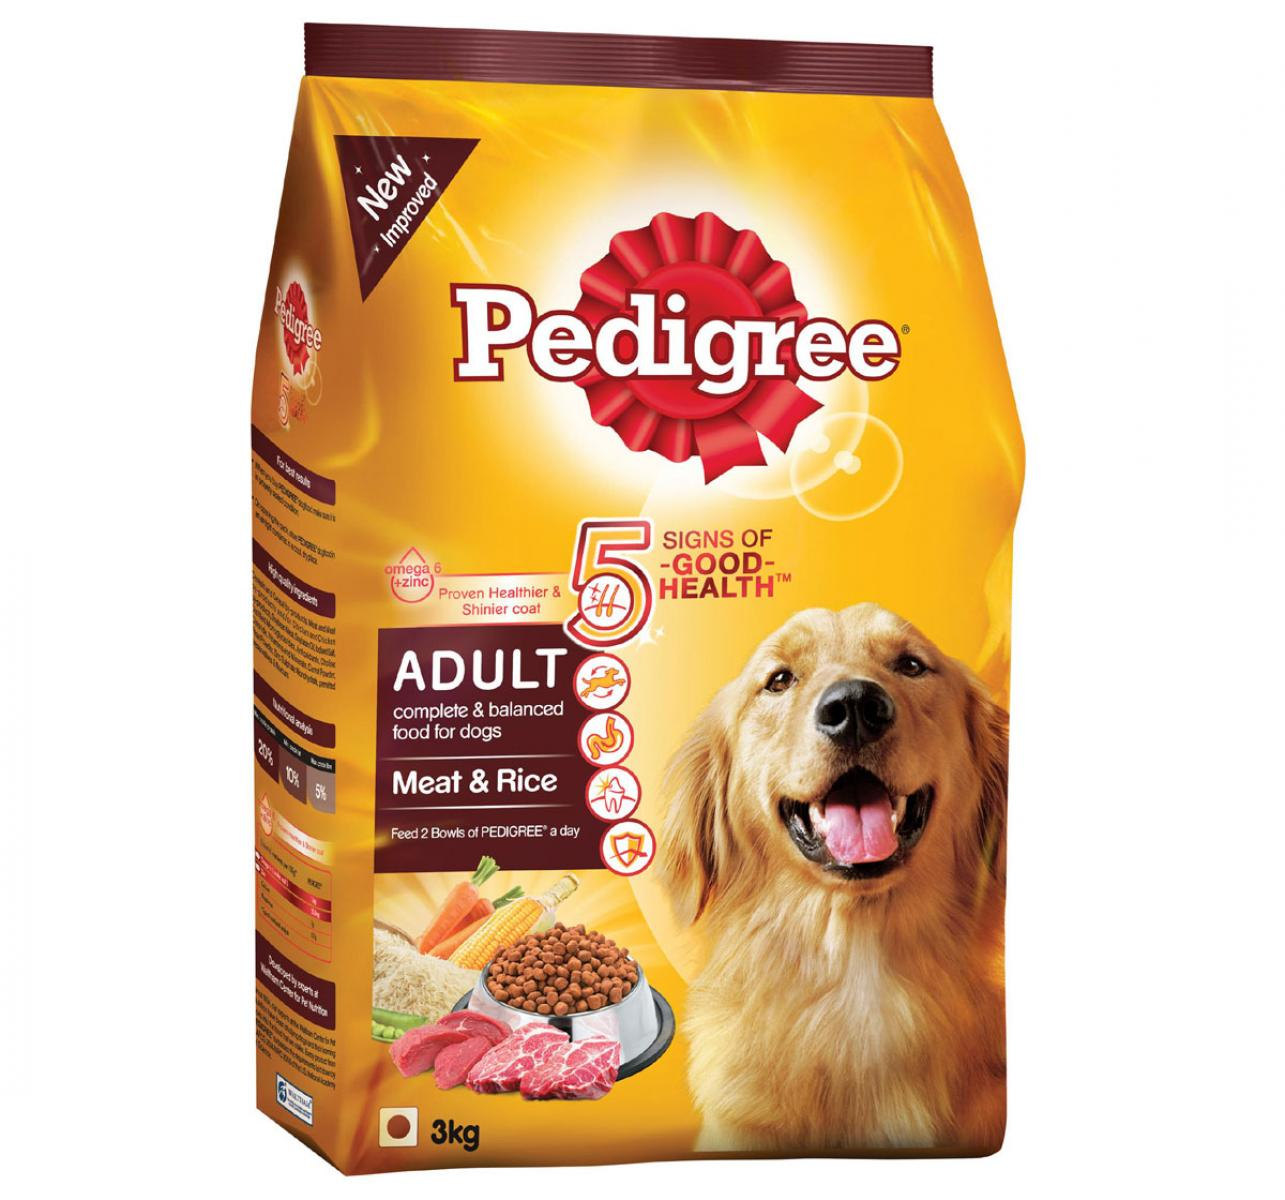 Pedigree Adult Dog Food Meat & Rice - 3 Kg